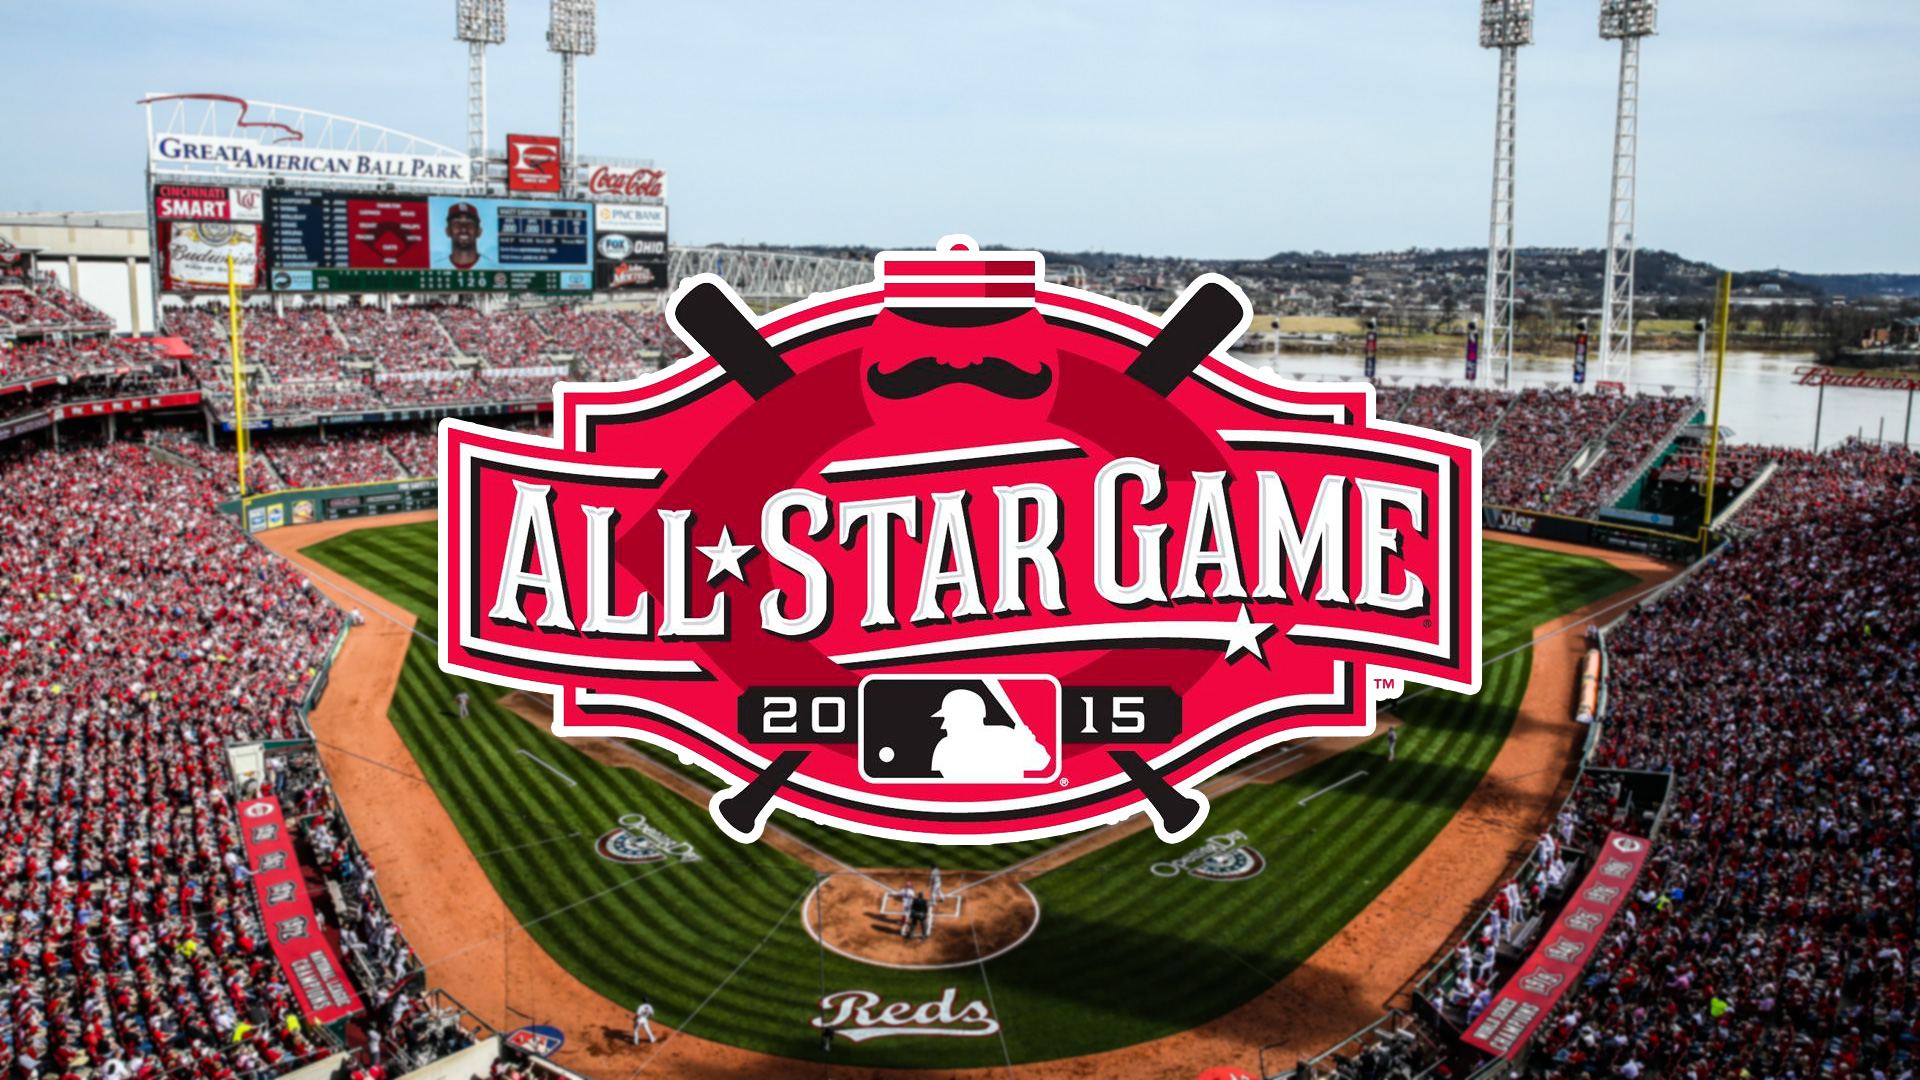 MLB All-Star Game Tickets | Single Game Tickets & Schedule ...